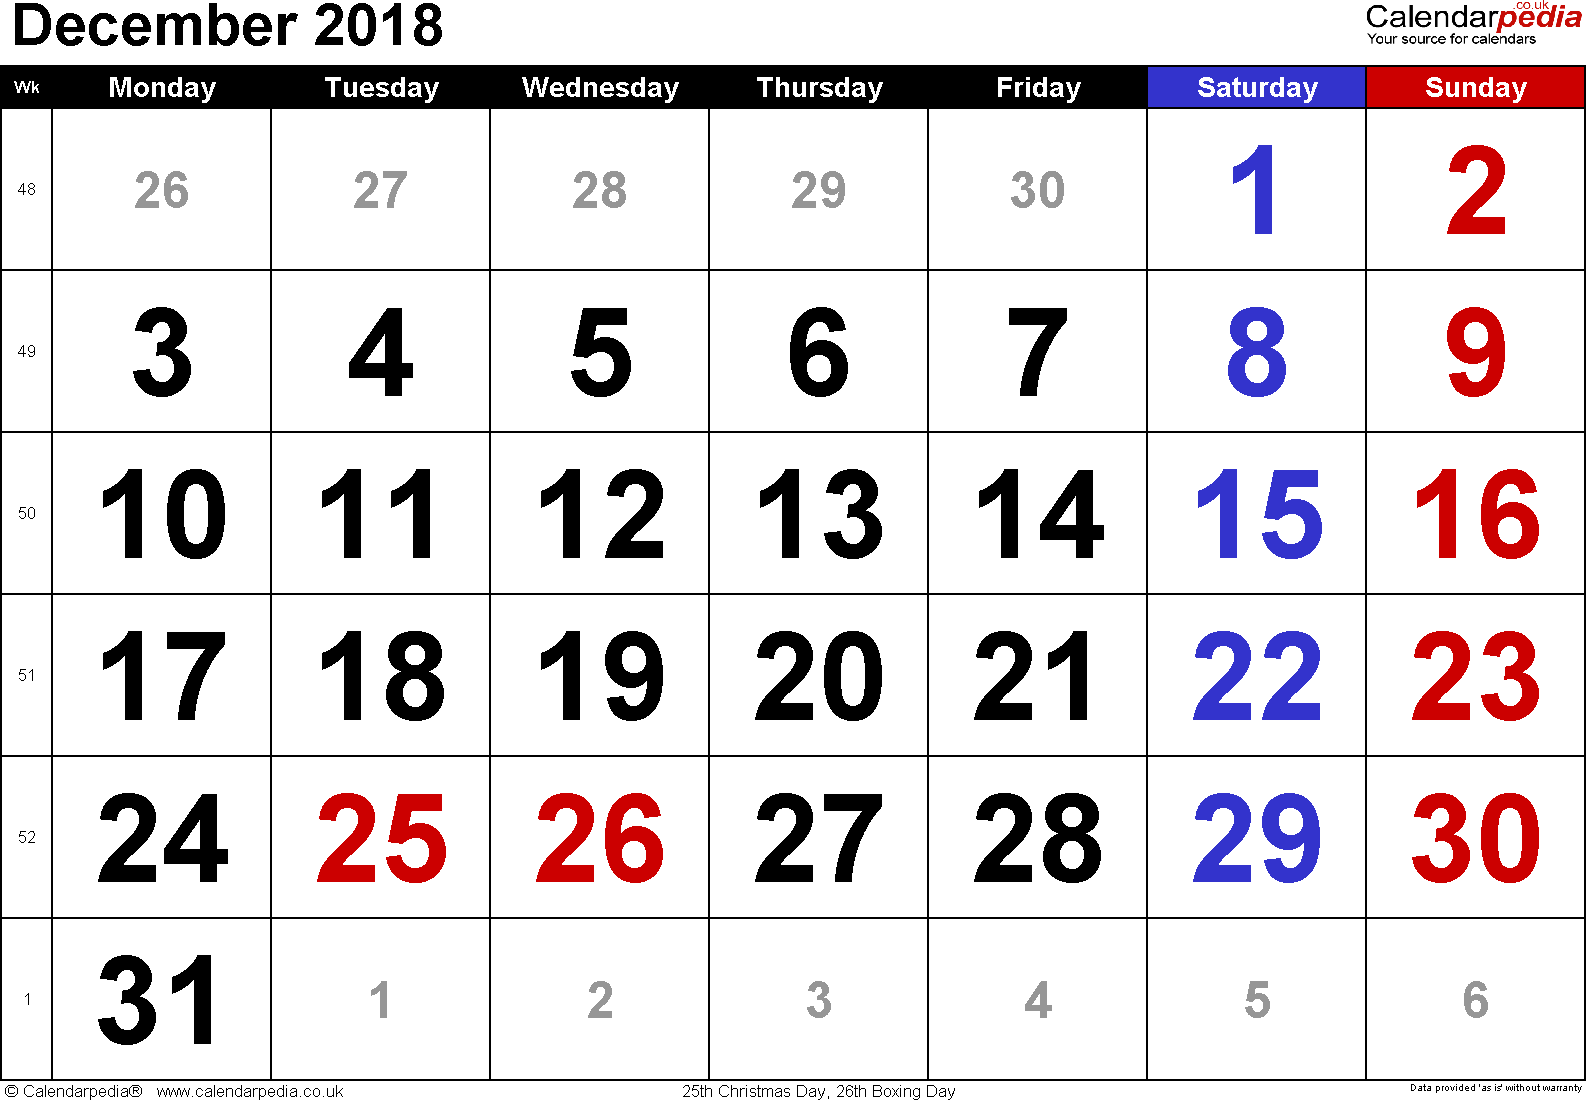 calendar december 2018 landscape orientation large numerals 1 page with uk bank